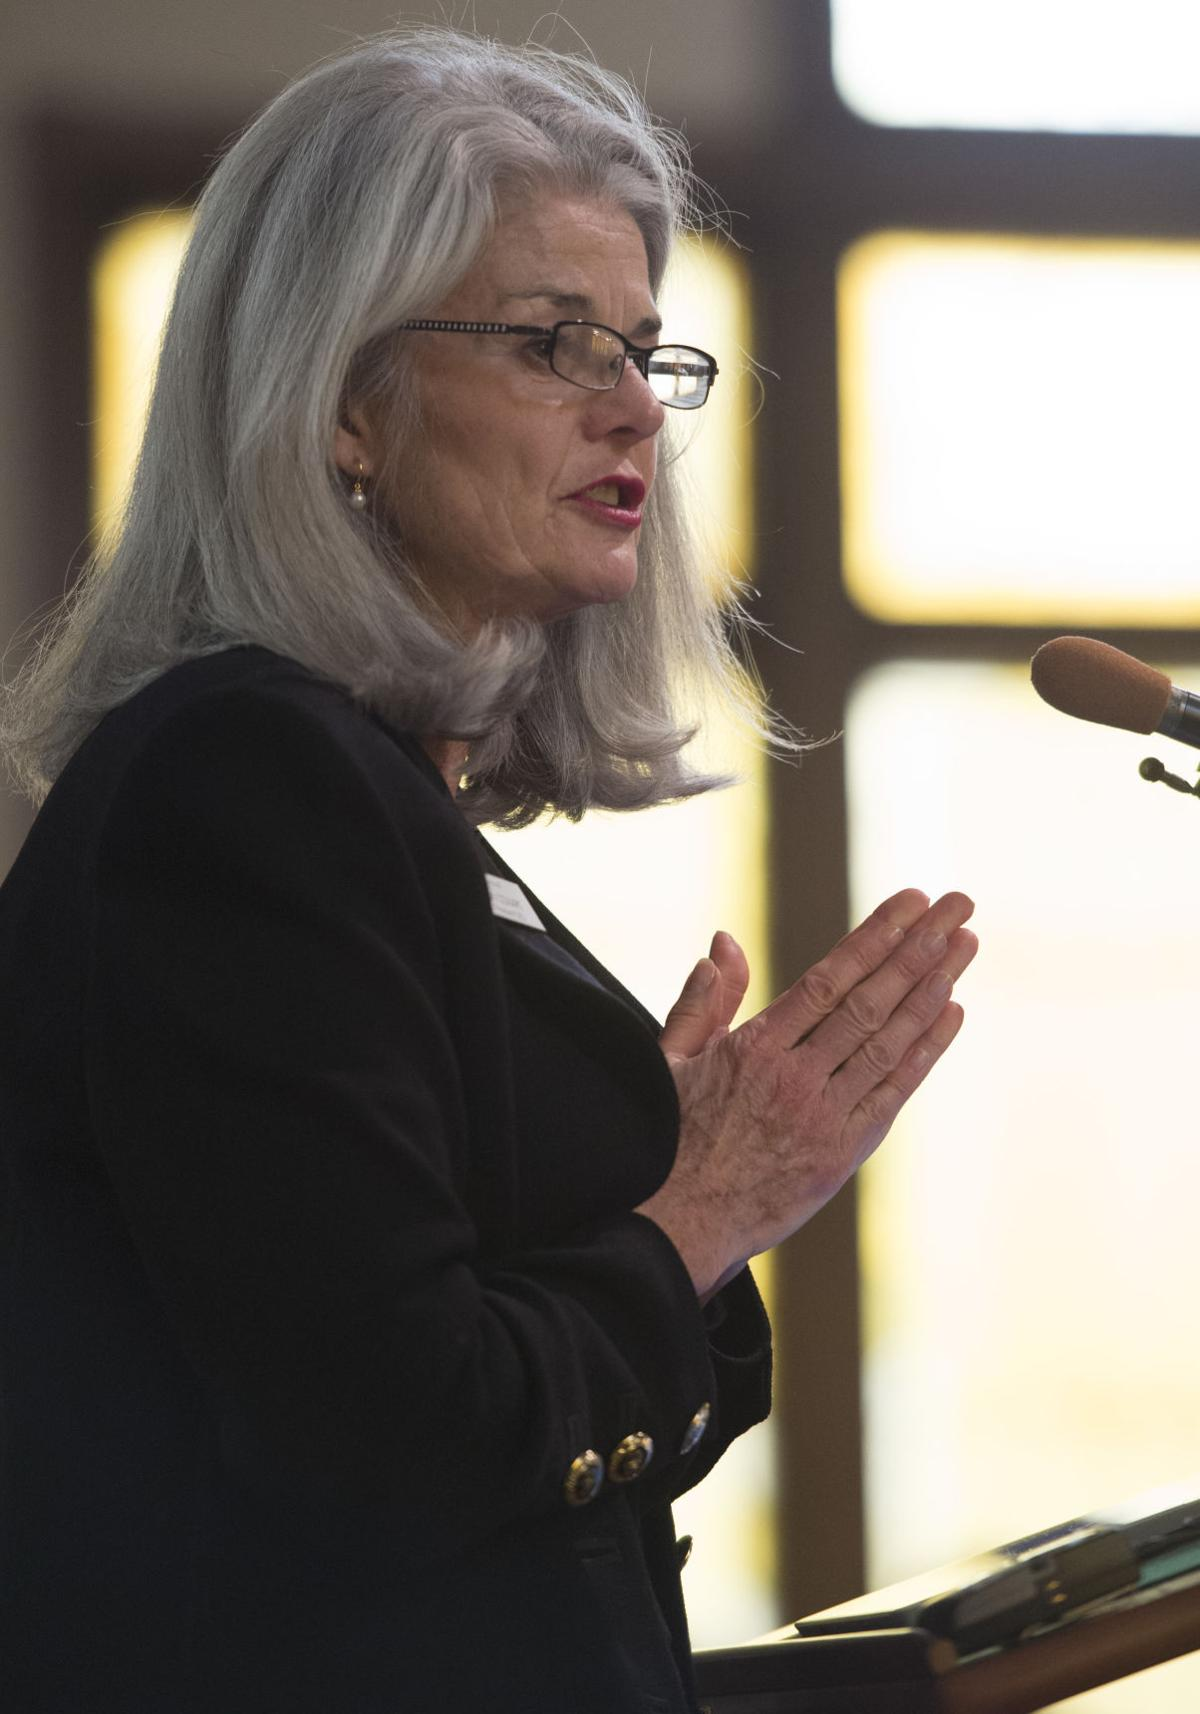 Vicki Cowart, the president and CEO of Planned Parenthood of the Rocky Mountians, speaks Saturday, Nov. 28, 2015, during a vigil at the All Souls Unitarian Universalist Church in downtown Colorado Springs for the three killed in the shooting at the Planned Parenthood clinic Friday, Nov. 27, 2015. (The Gazette, Christian Murdock)